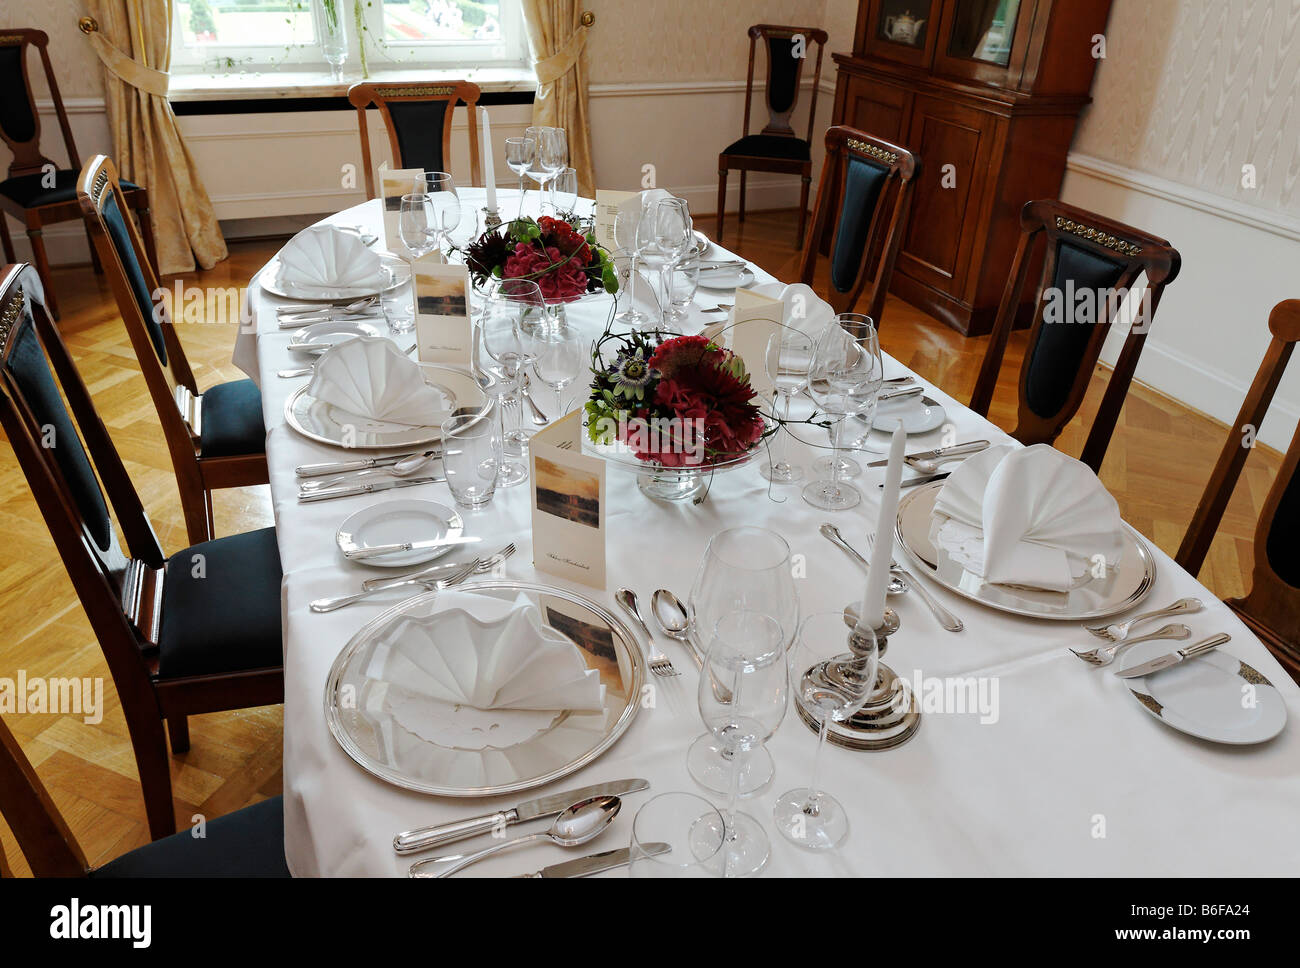 Banquet table set for six people in the Biedermeierzimmer or Biedermeier Room of the Krickenbeck moated castle, Stock Photo